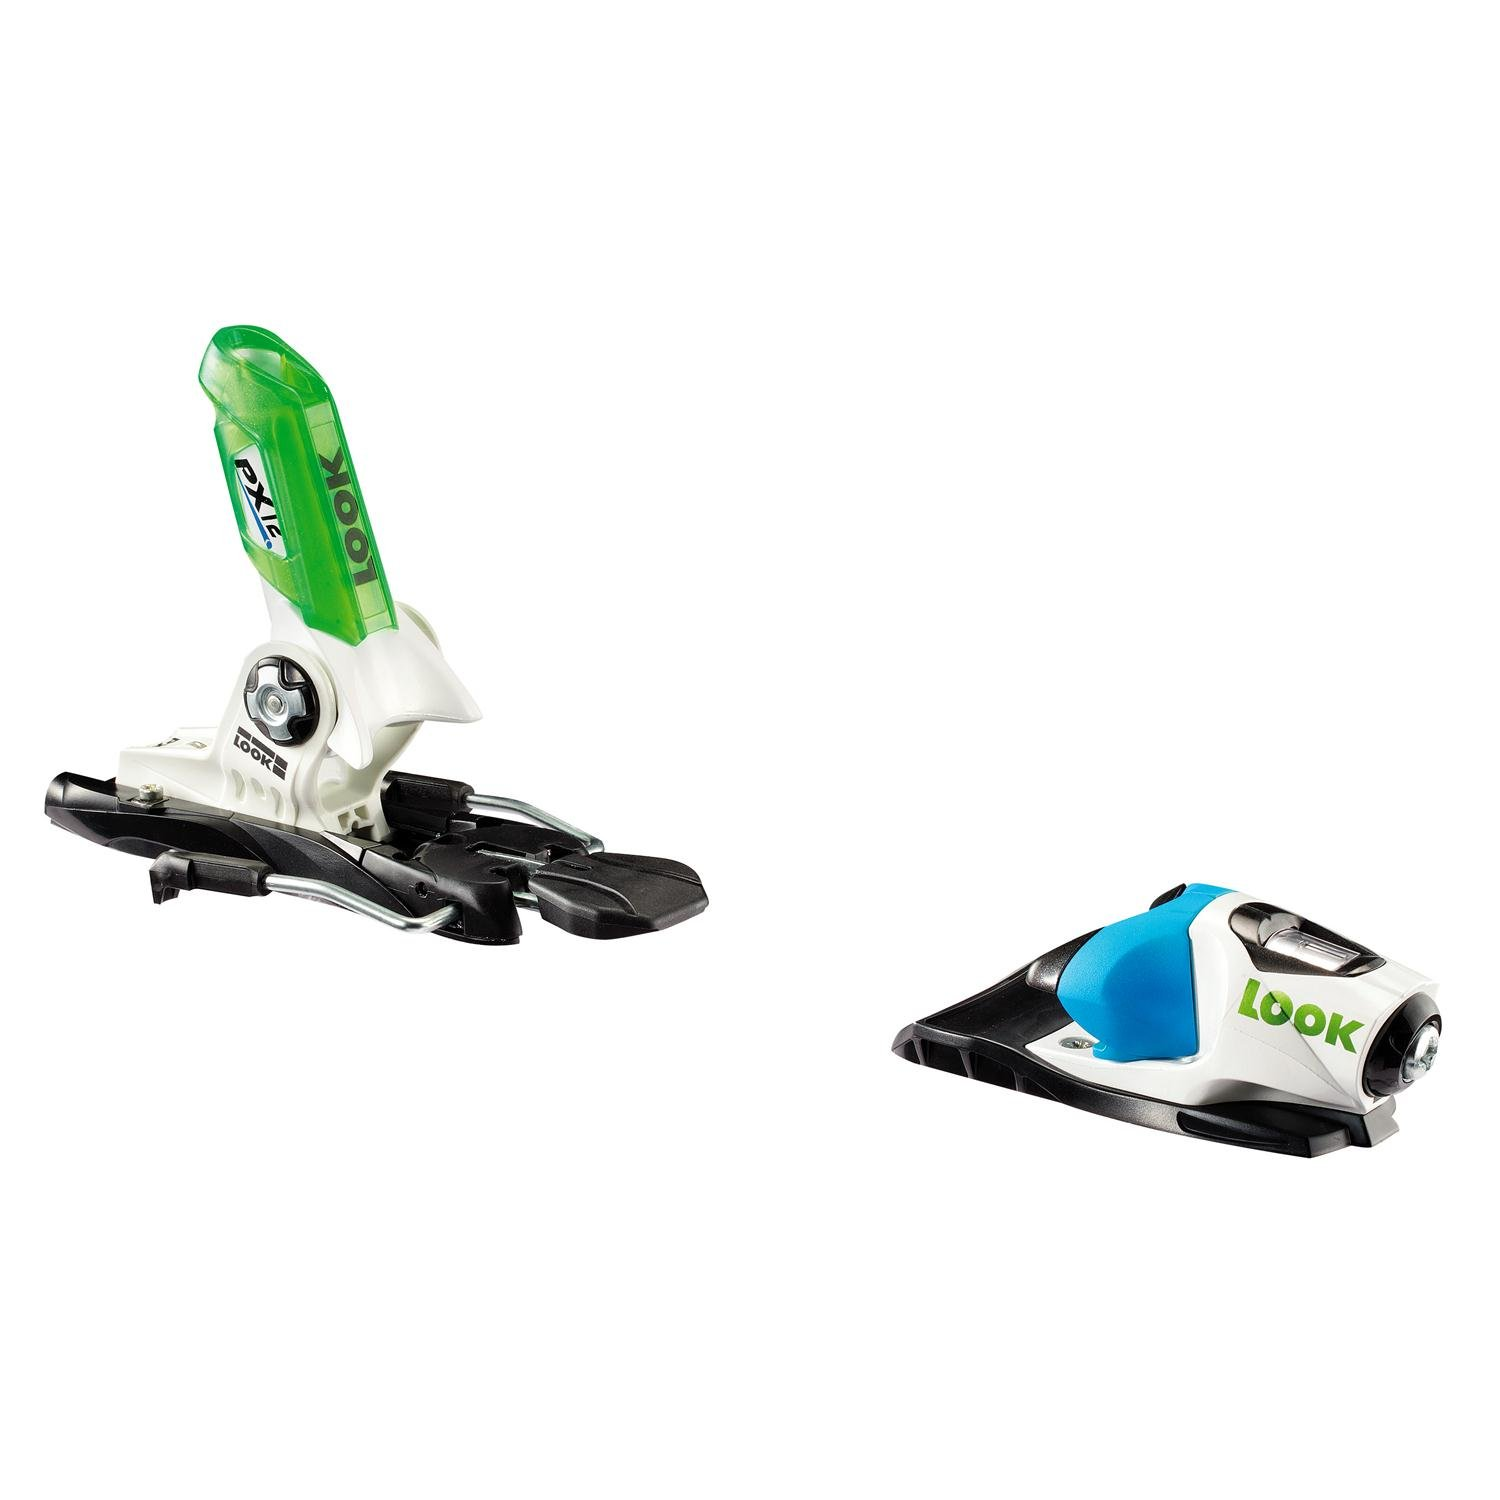 Look PX 12 Ski Bindings 2014